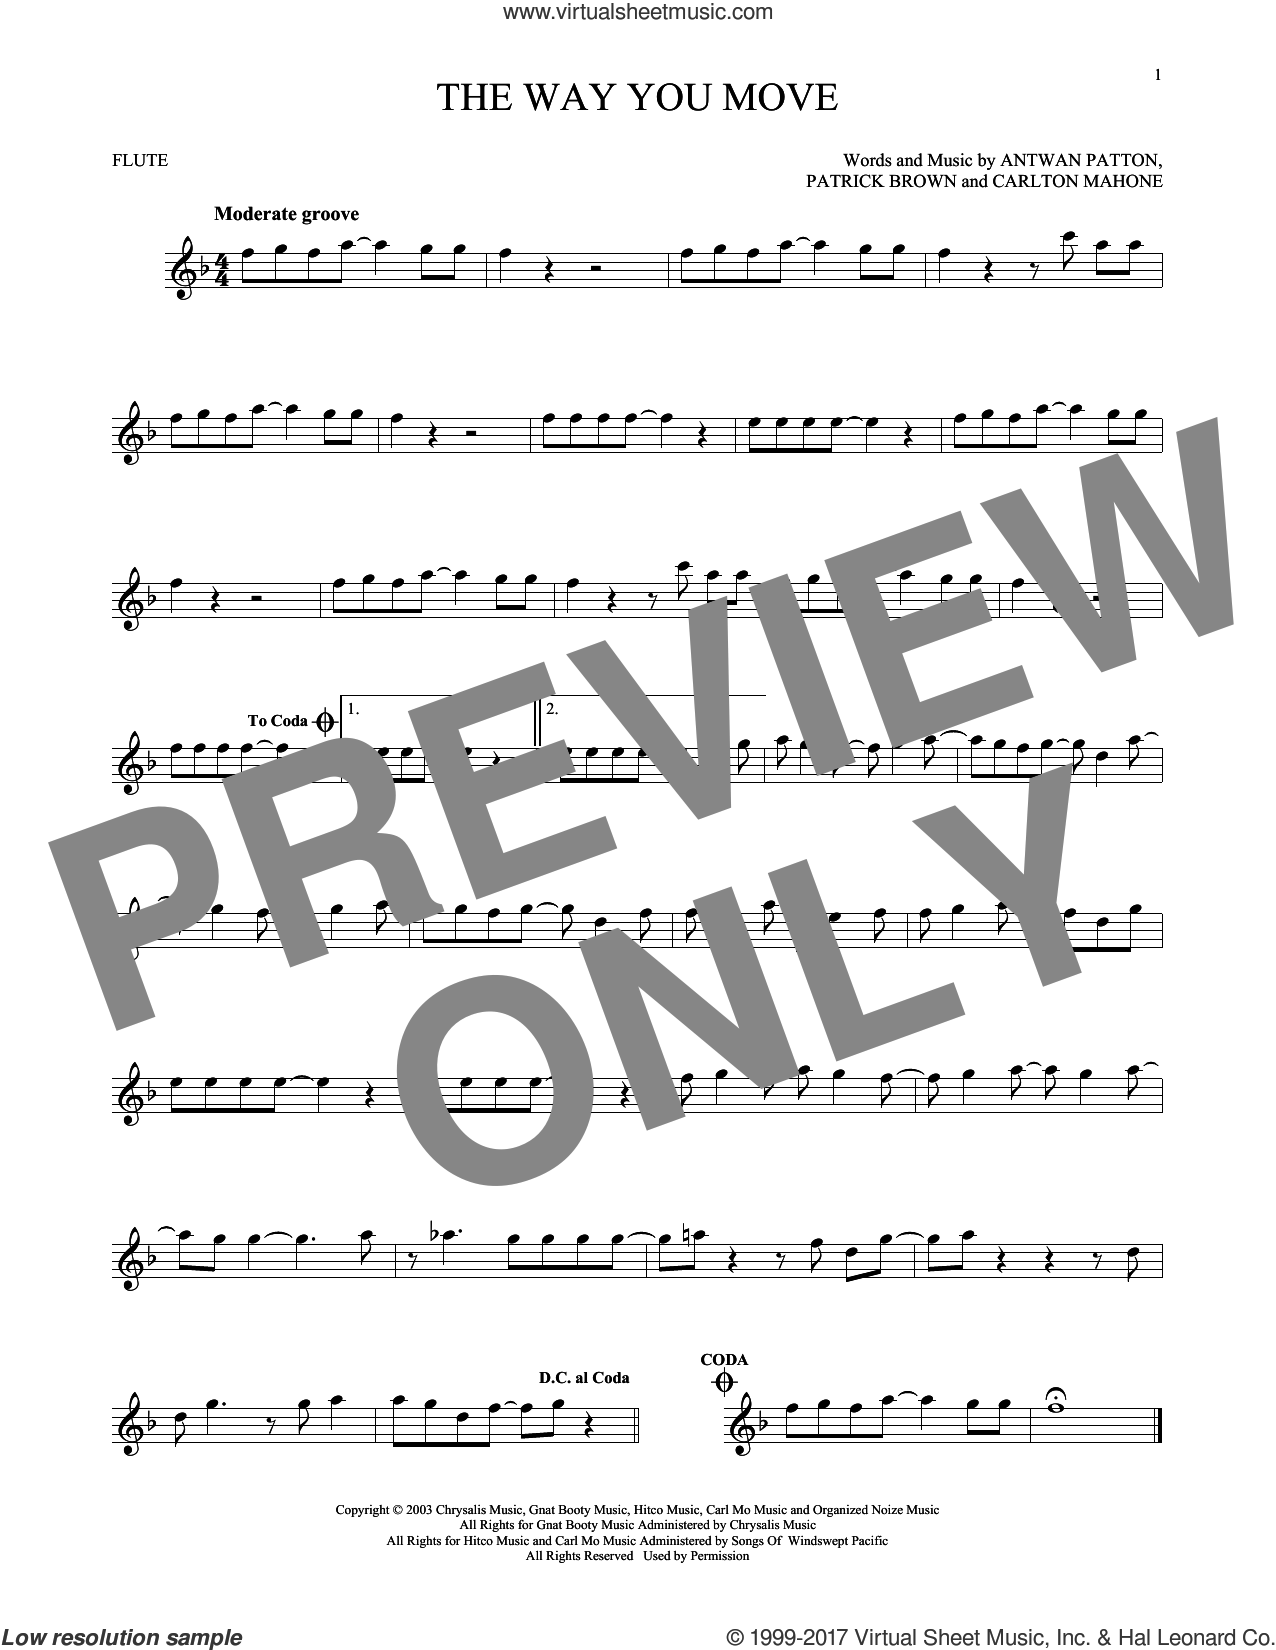 The Way You Move sheet music for flute solo by Outkast featuring Sleepy Brown, Antwon Patton, Cartlon Mahone and Patrick Brown, intermediate skill level